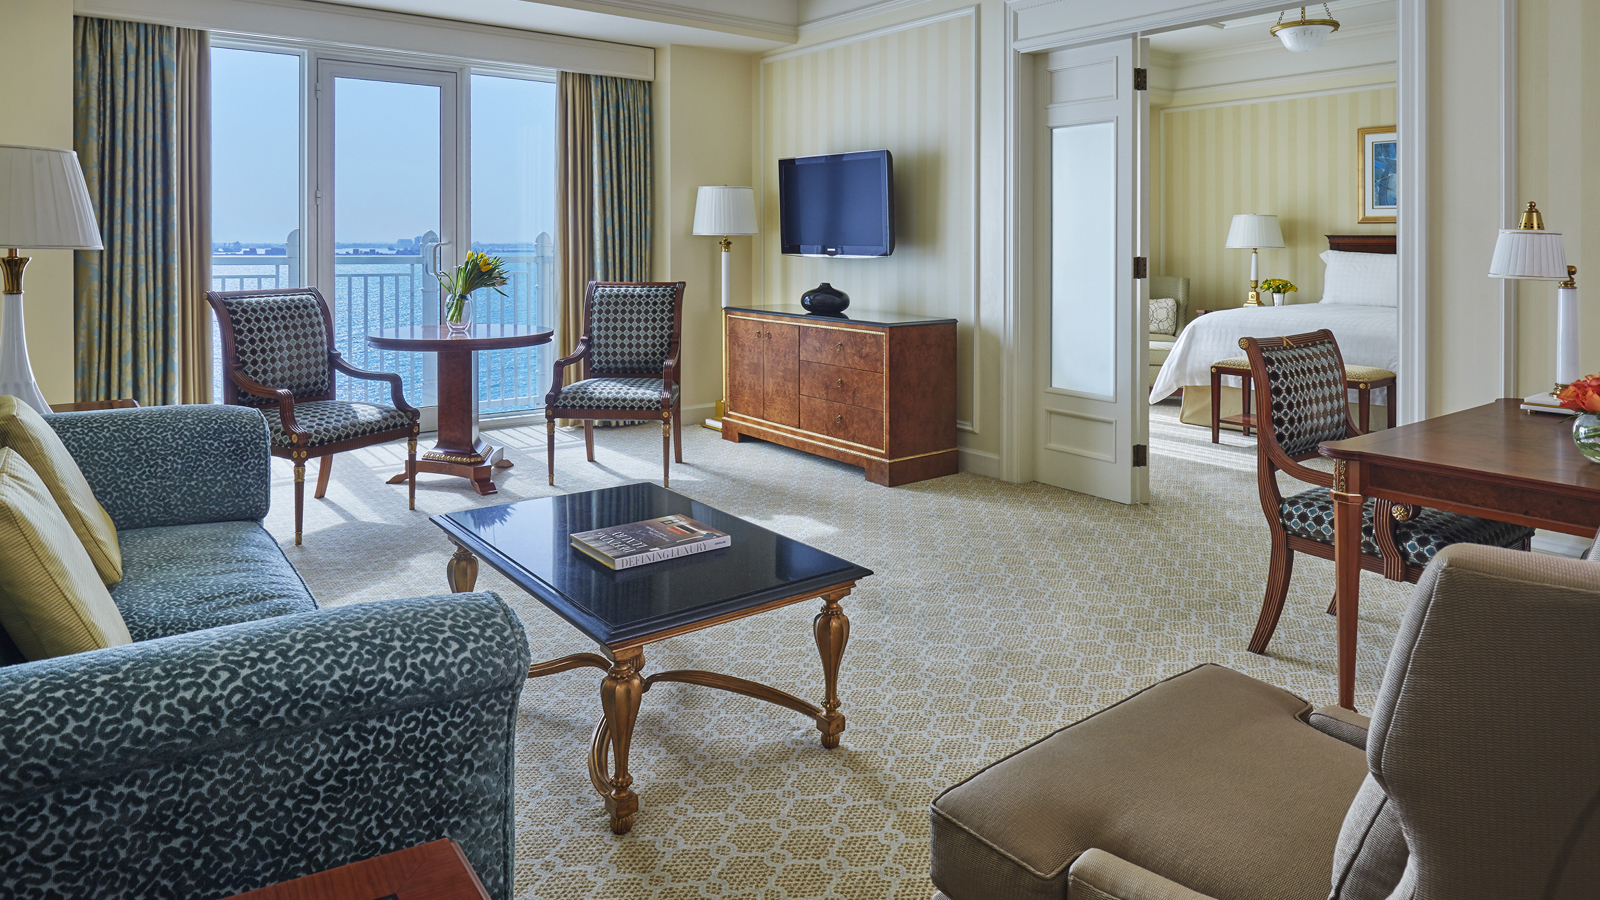 Third Night Free Four Seasons Hotel Doha Offers An Exciting Experience For Those Travelling To Our Sophisticated Resort Like Setting On The Arabian